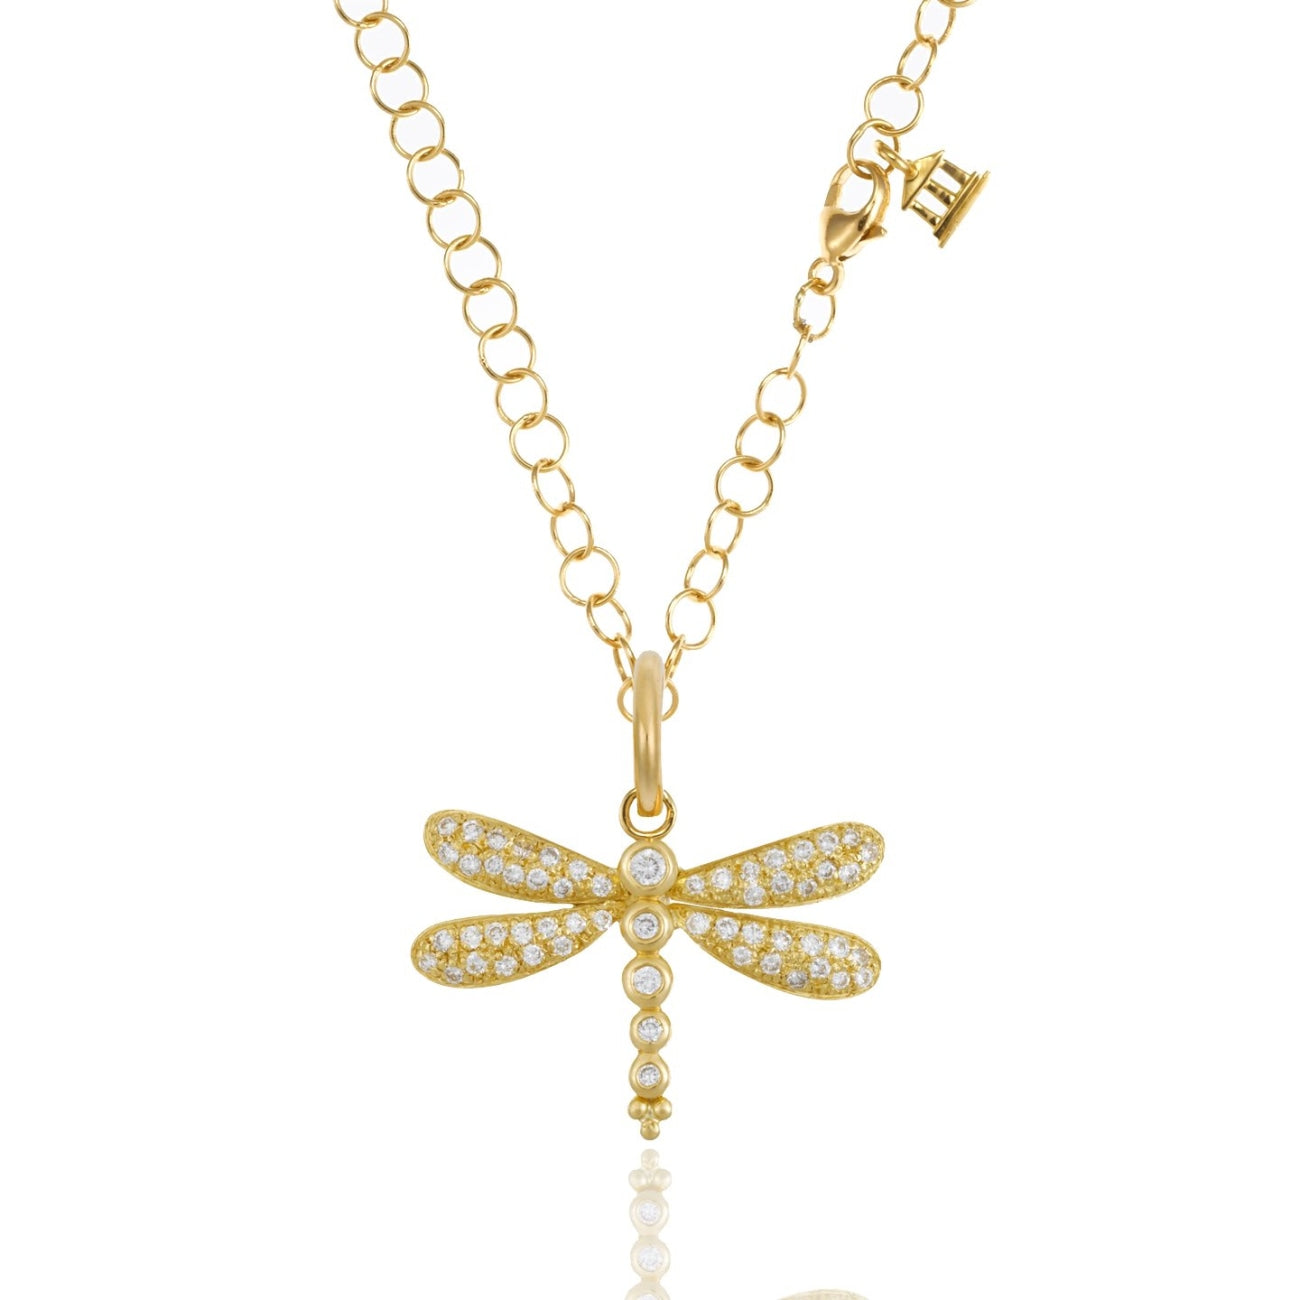 Temple St Clair Jewelry - 18K Dragonfly Pendant with diamond pavé | Manfredi Jewels